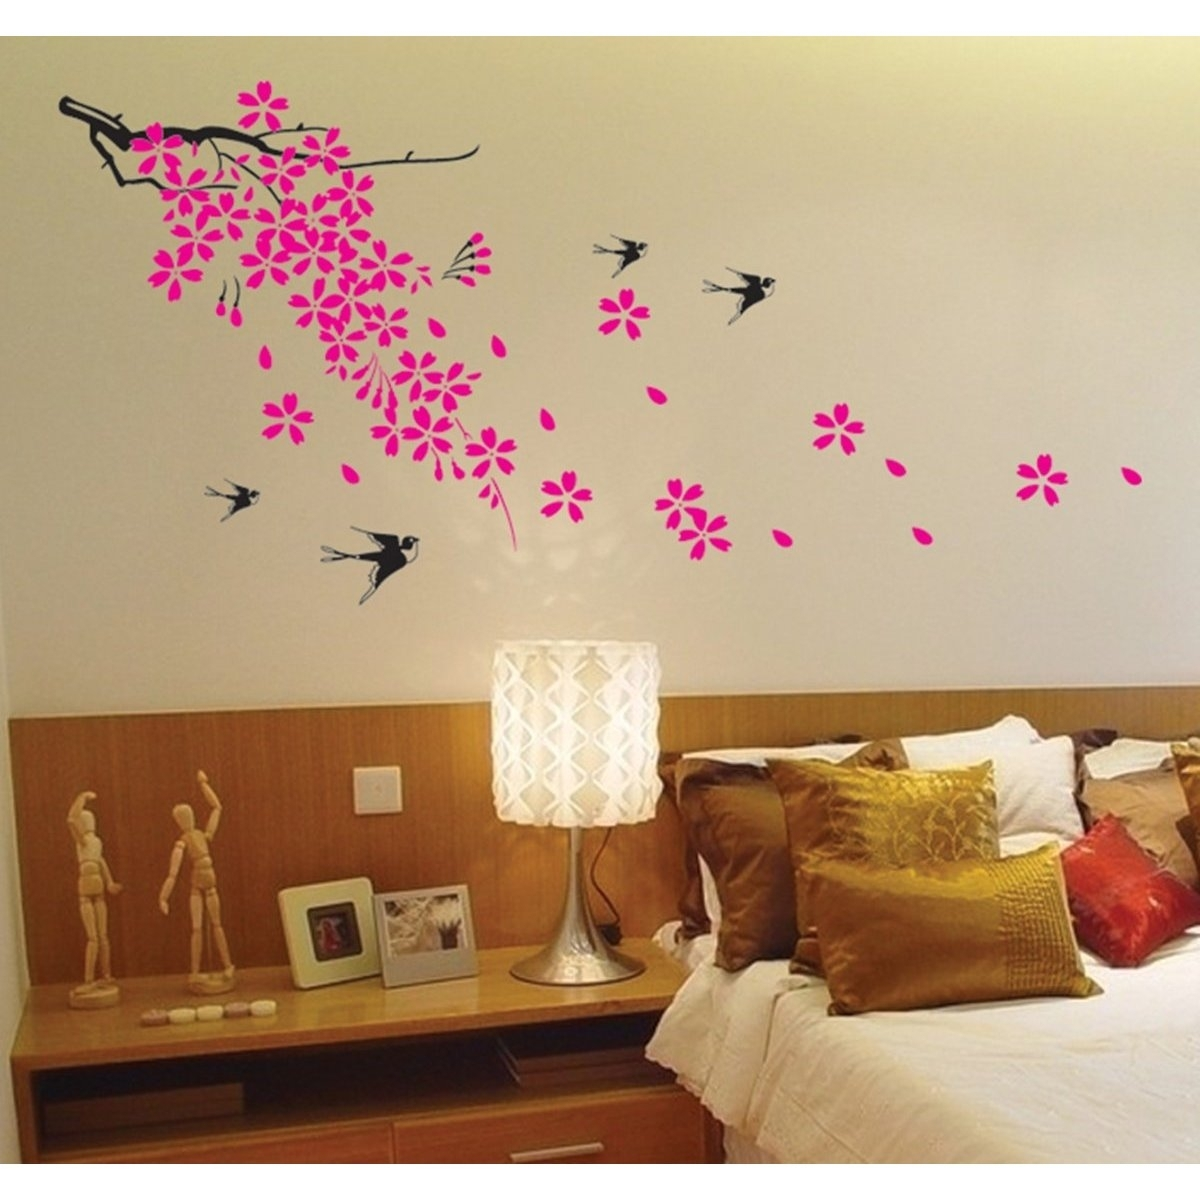 Decoration Art For House Decoration Small Mirror Wall Art Household inside Art For Walls (Image 7 of 20)